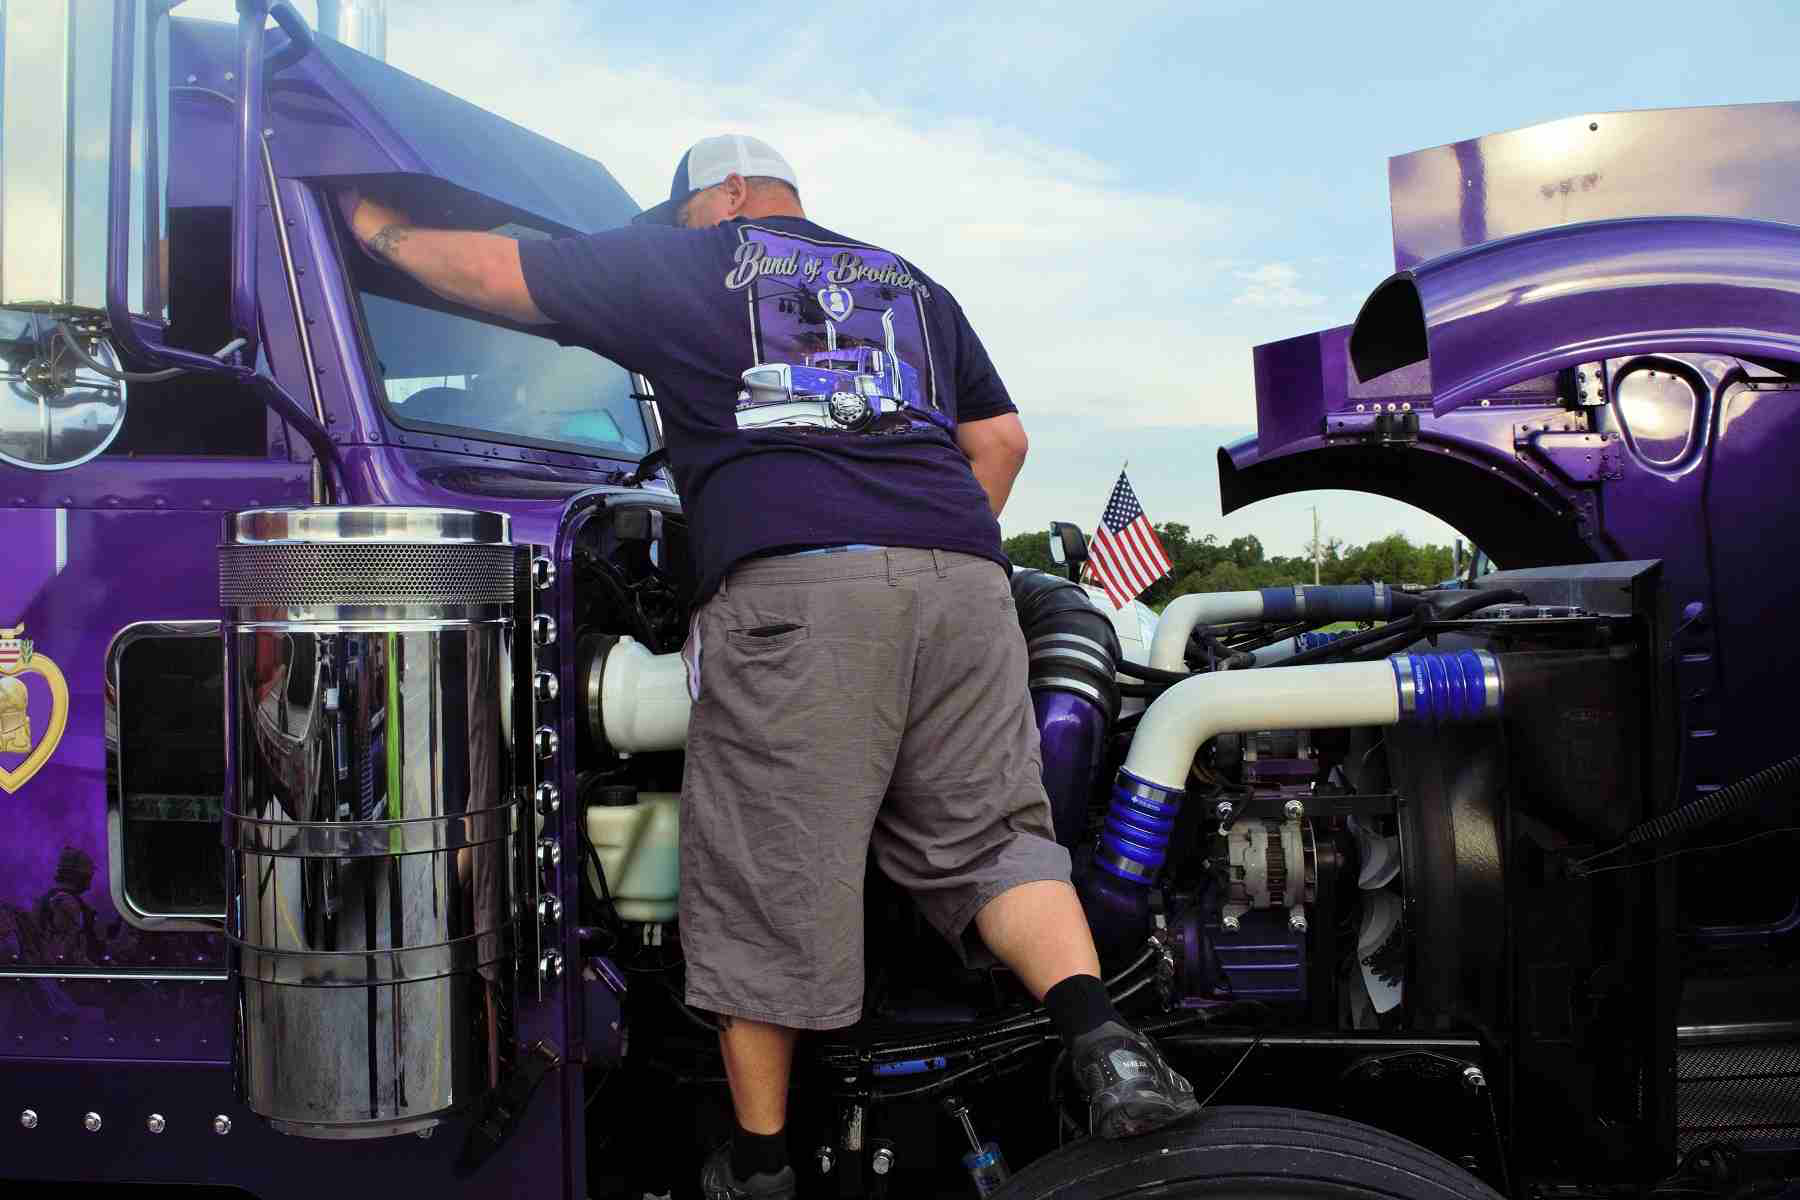 """Army veteran and Purple Heart recipient after his military convoy was ambushed in Iraq early this century, owner-operator Sean McEndree today runs in this """"Band of Brothers"""" patriotically decorated custom rig. Stay tuned for more on the 2006 Peterbilt 379, which he piloted in the """"Stars, Stripes and White Lines"""" convoy, and custom work by DB Kustom Trucks, among other suppliers"""